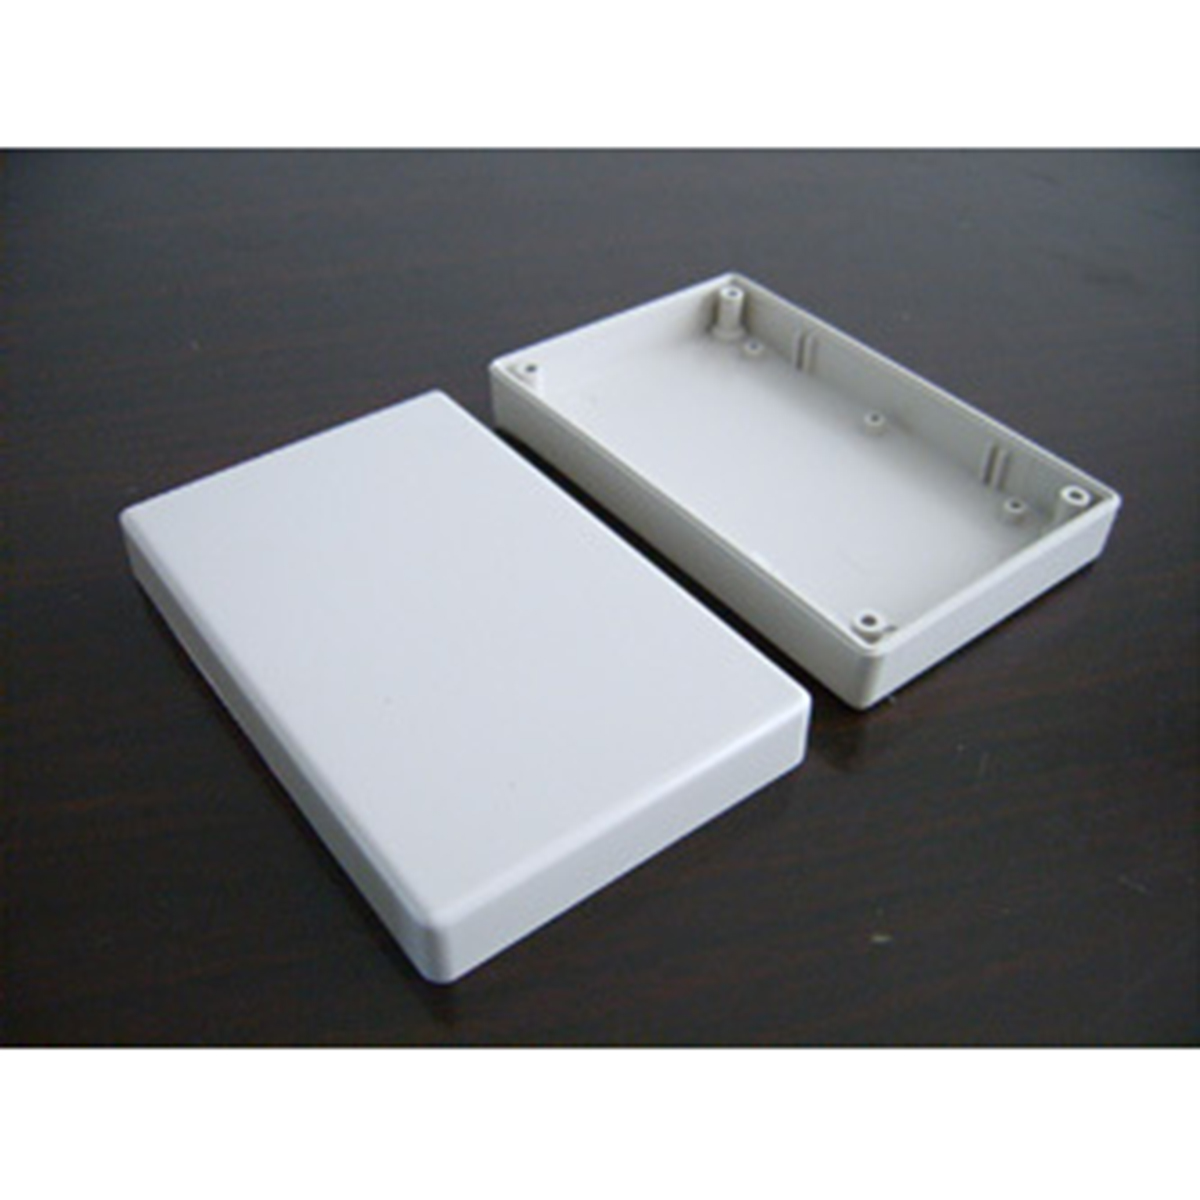 White Electronic Project Case Waterproof Plastic Cover Enclosure Box 125x80x32mm For Power Supply Units waterproof plastic abs electronic project box enclosure case 200x120x75mm white